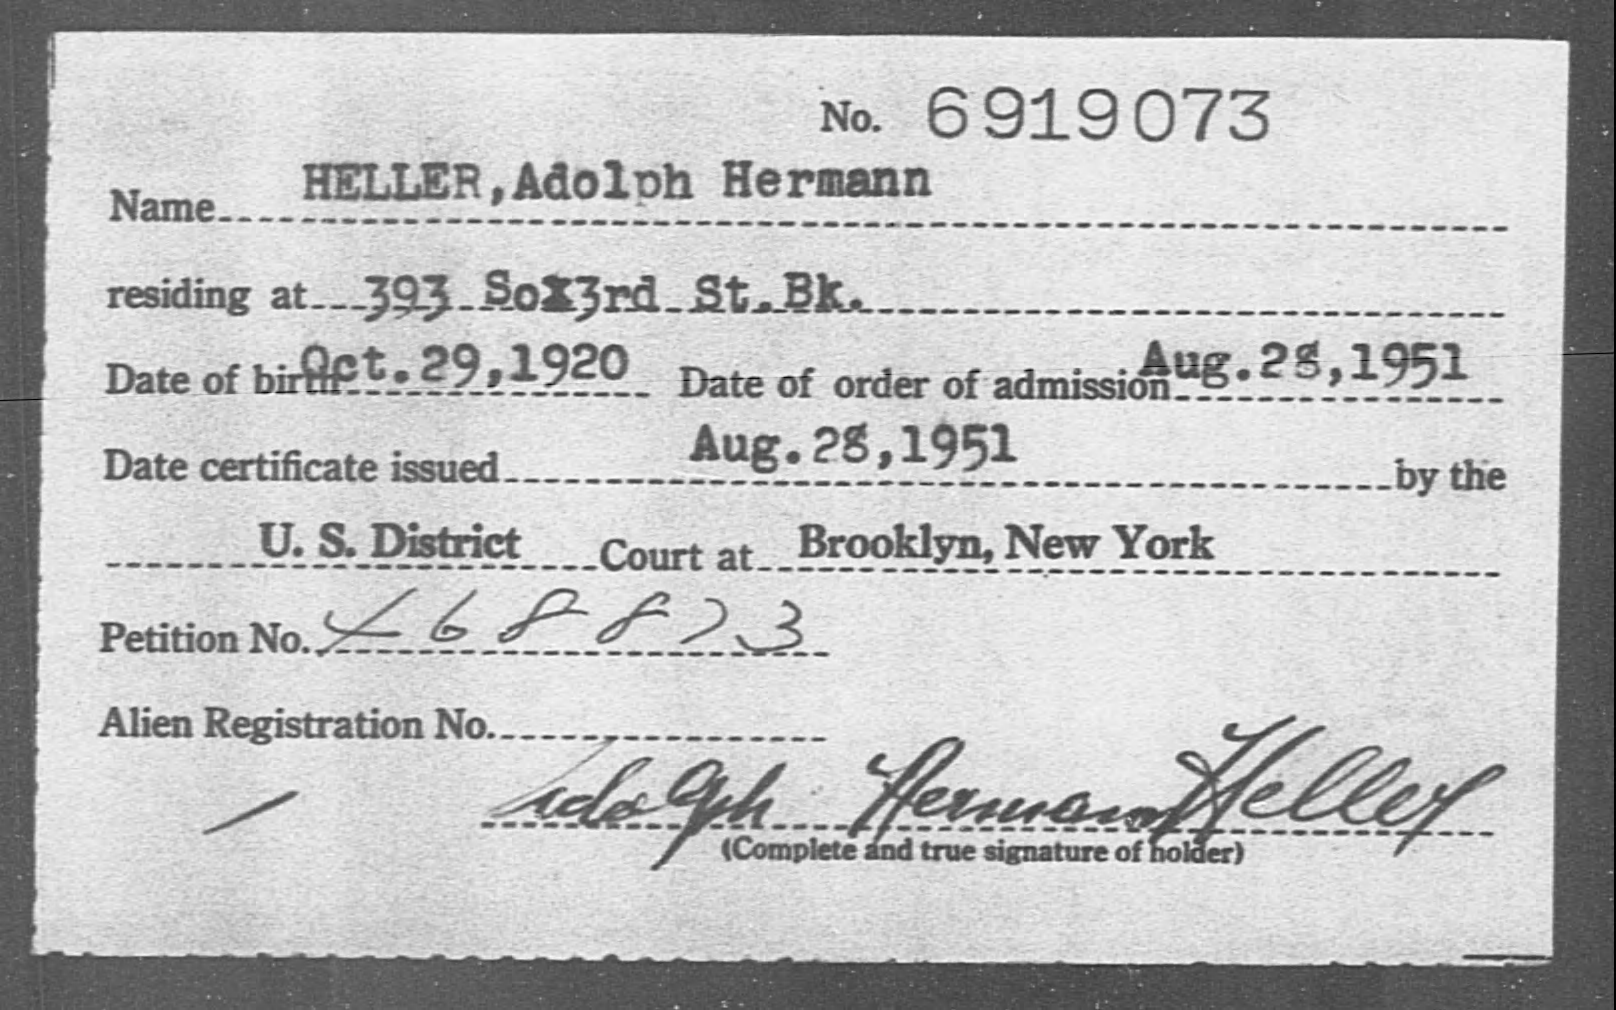 HELLER, Adolph Hermann - Born: 1920, Naturalized: 1951